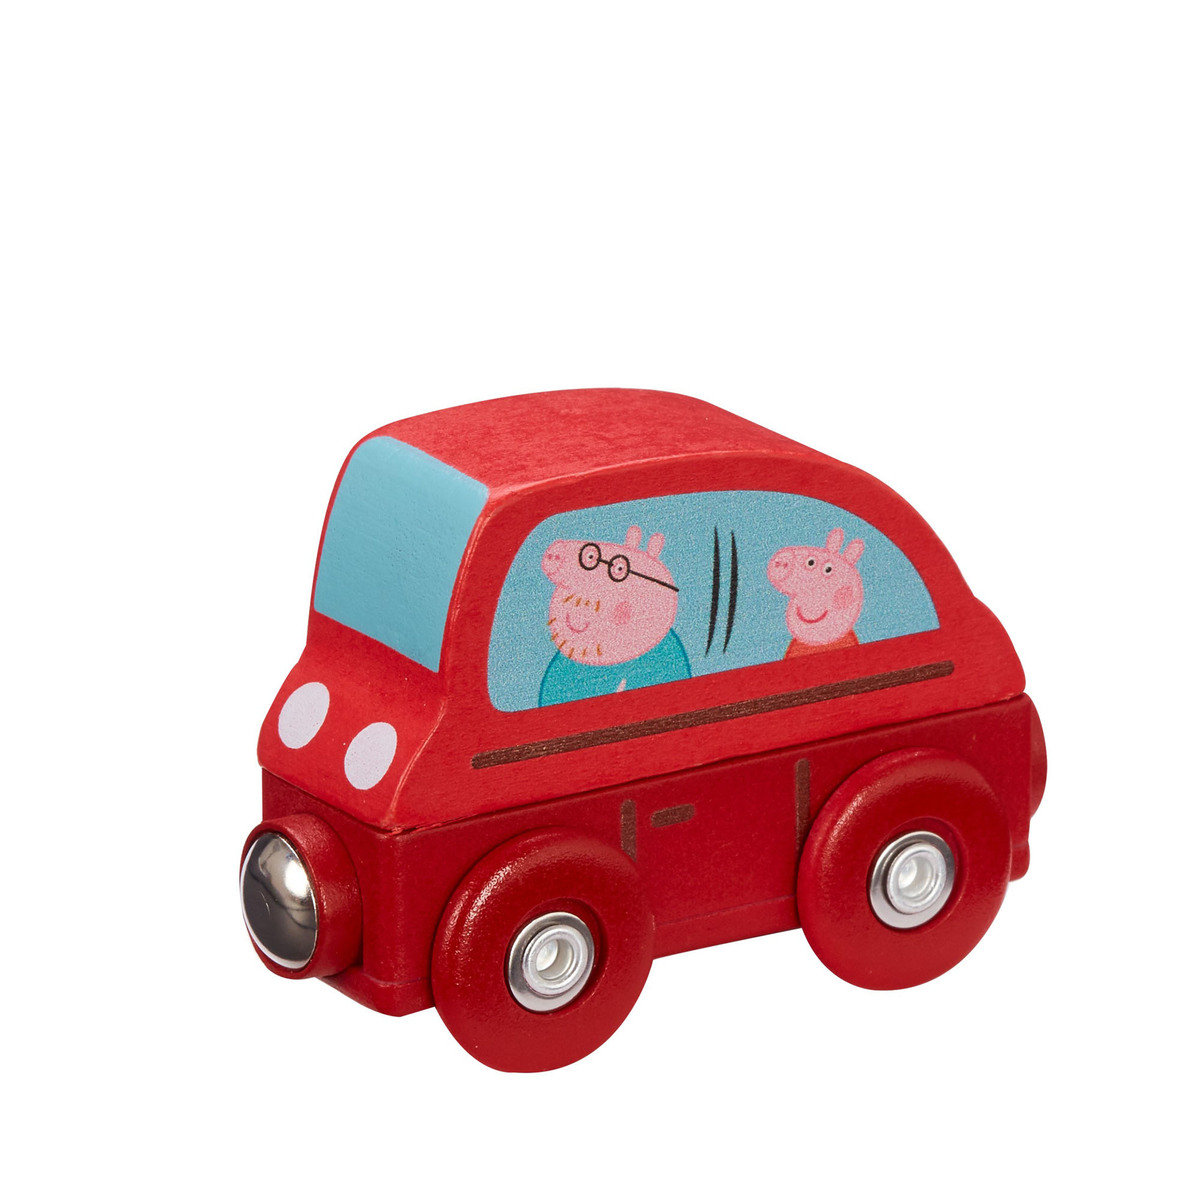 Peppa Pig Wooden Mini Vehicles - Car from Early Learning Center